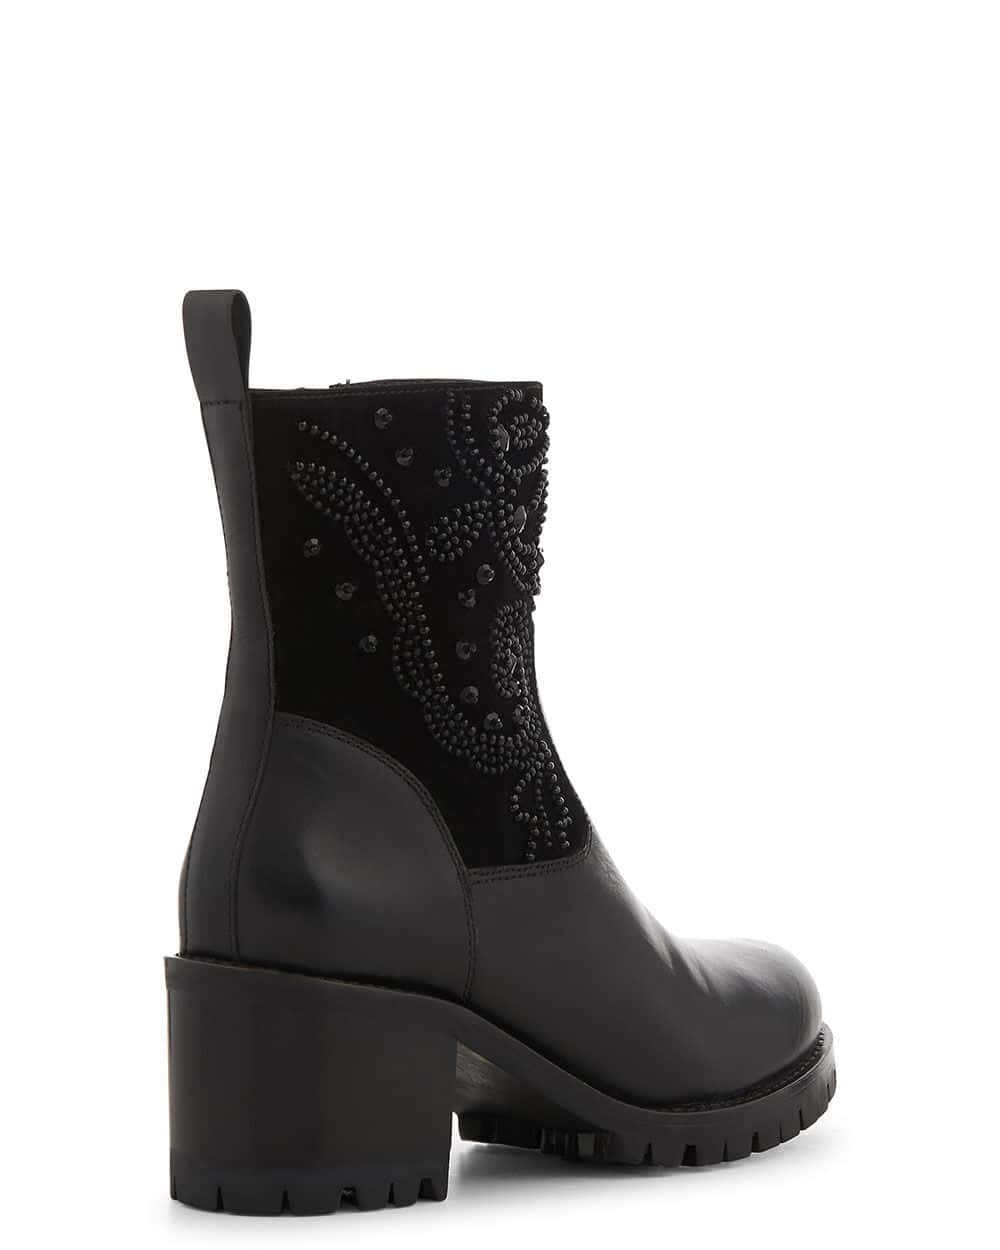 Gaylor Gaylor Minelli Boots Chaussures Boots Chaussures 7PqSZS